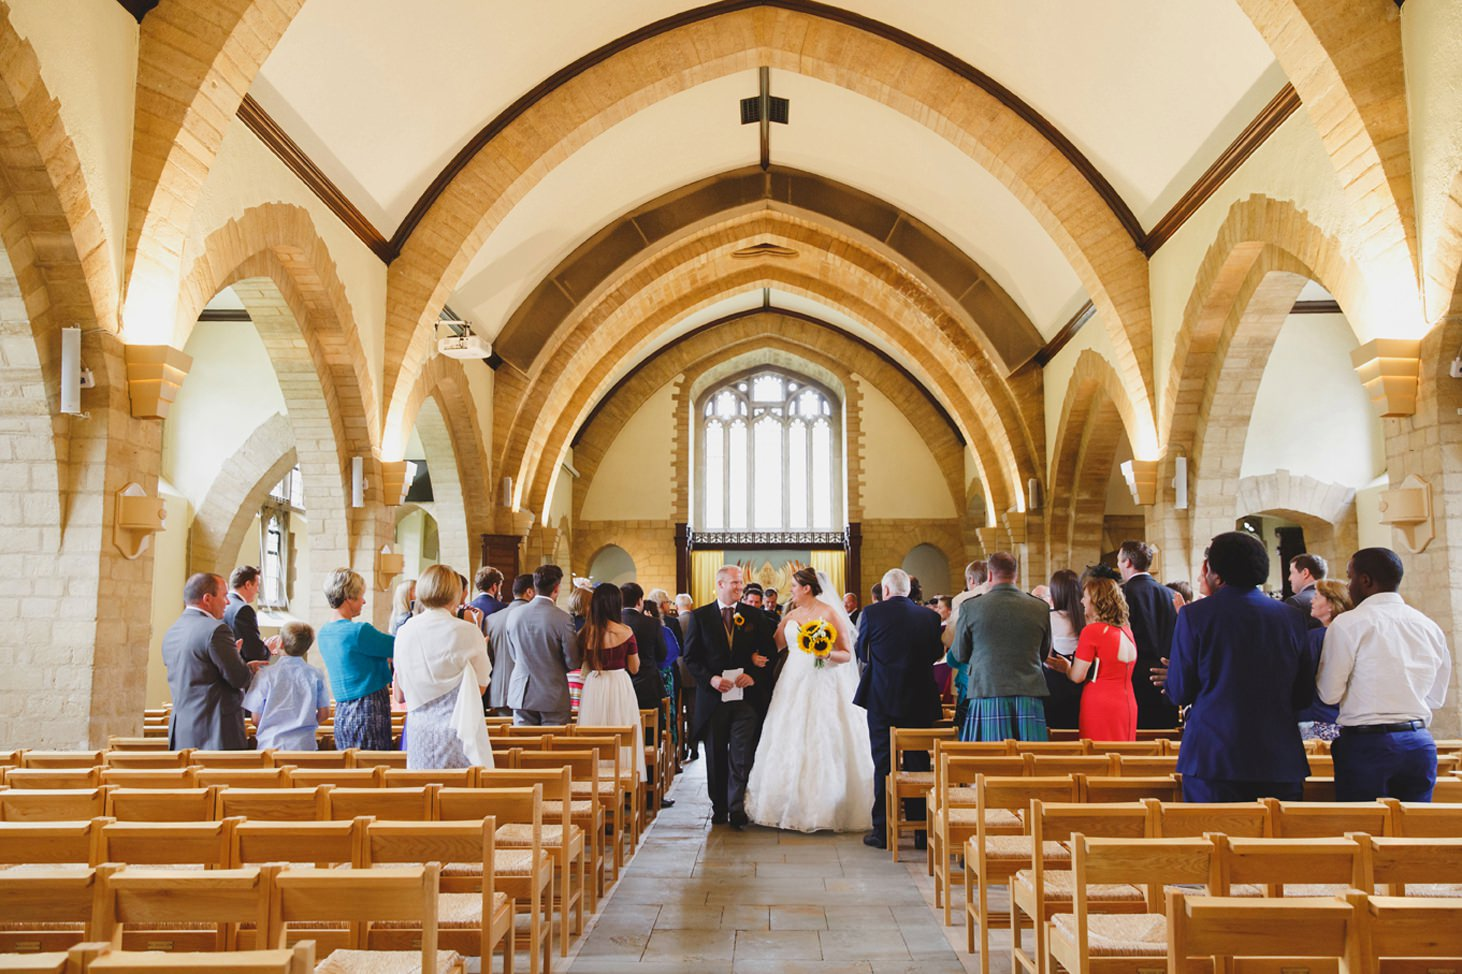 Wycombe Abbey wedding photography bride and groom walking down aisle